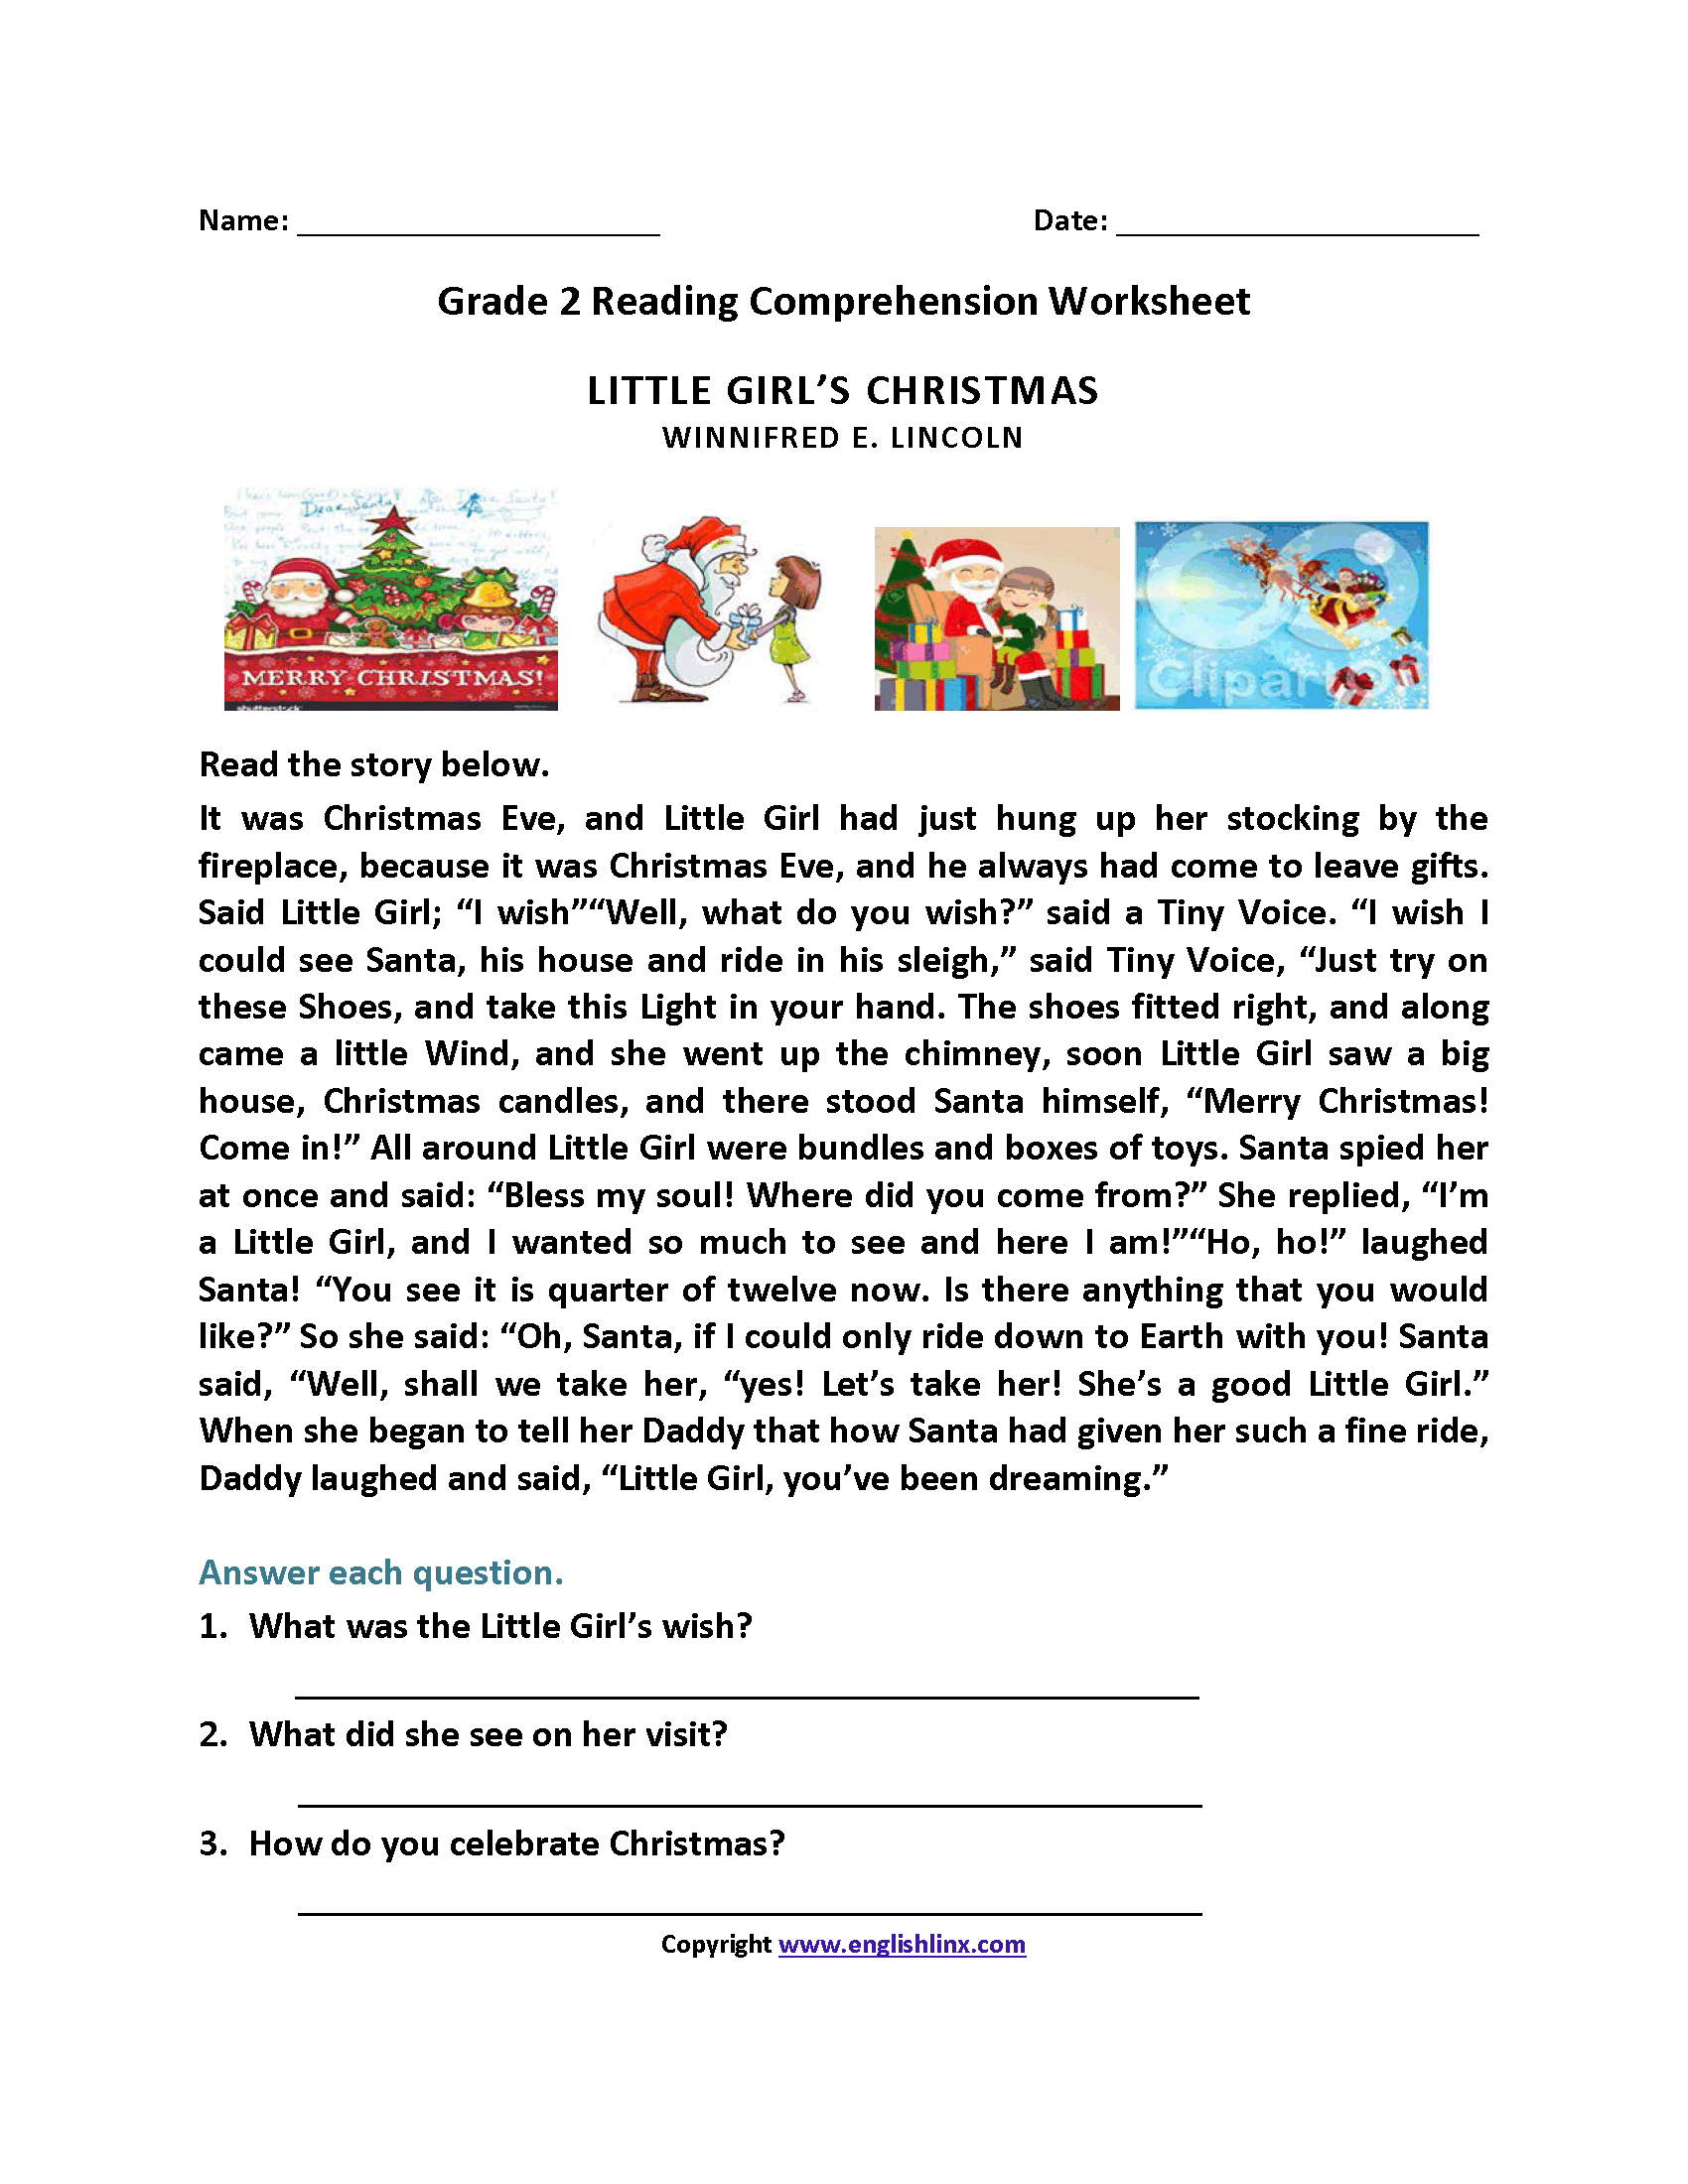 Little Girl S Christmas Second Grade Reading Worksheets